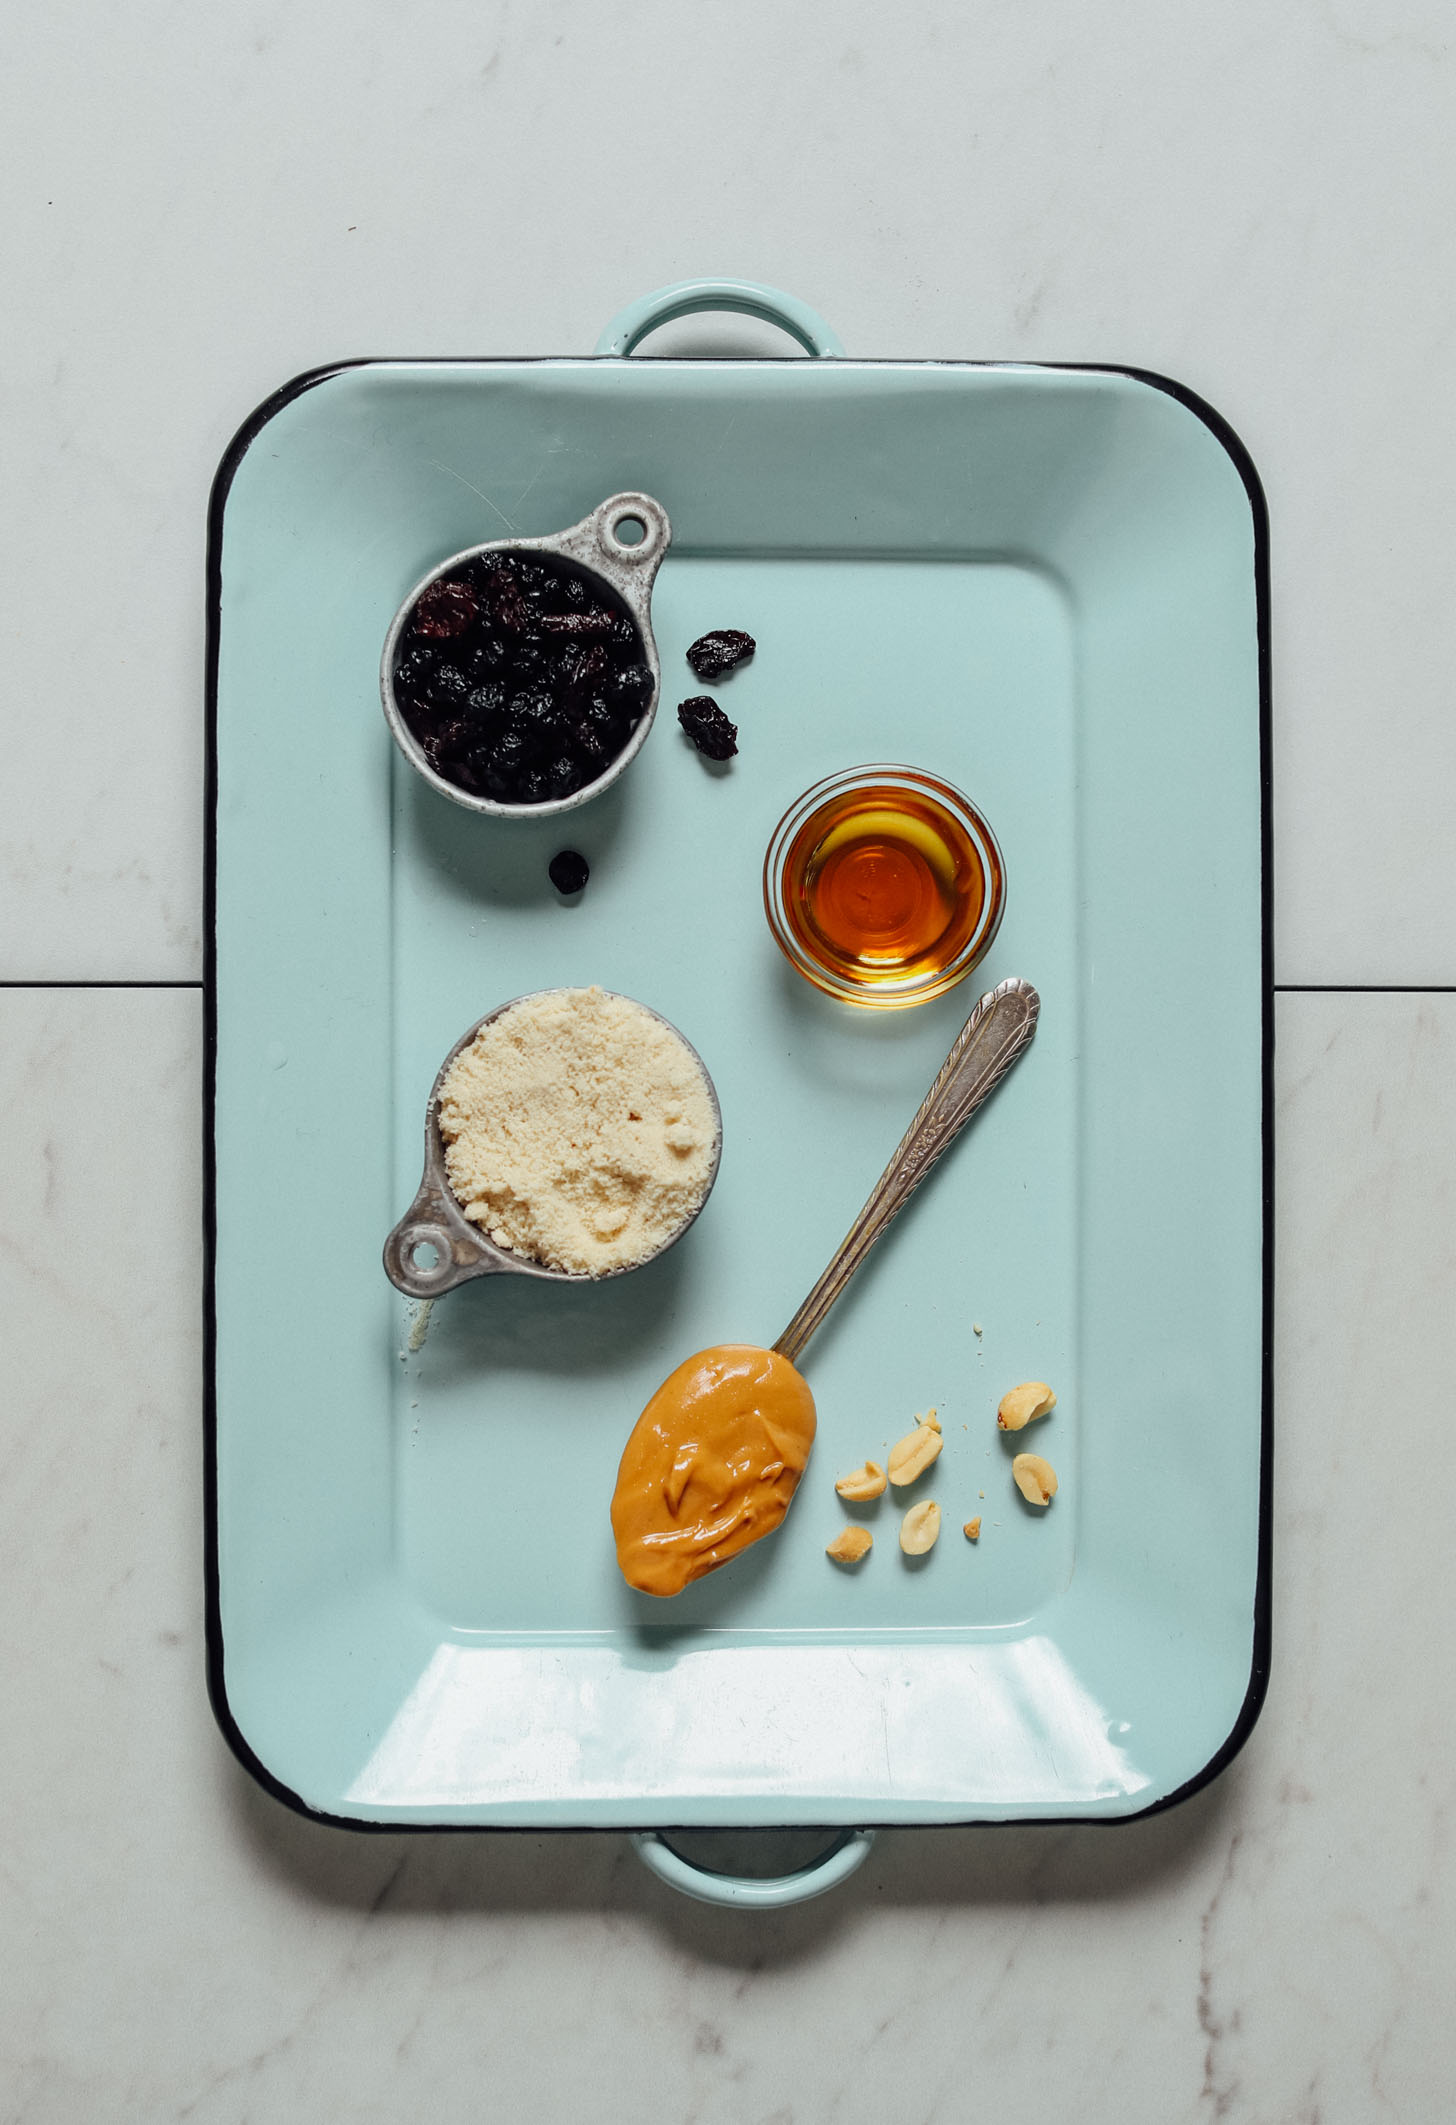 Tray with ingredients for making our No Bake Peanut Butter Thumbprint Cookies recipe